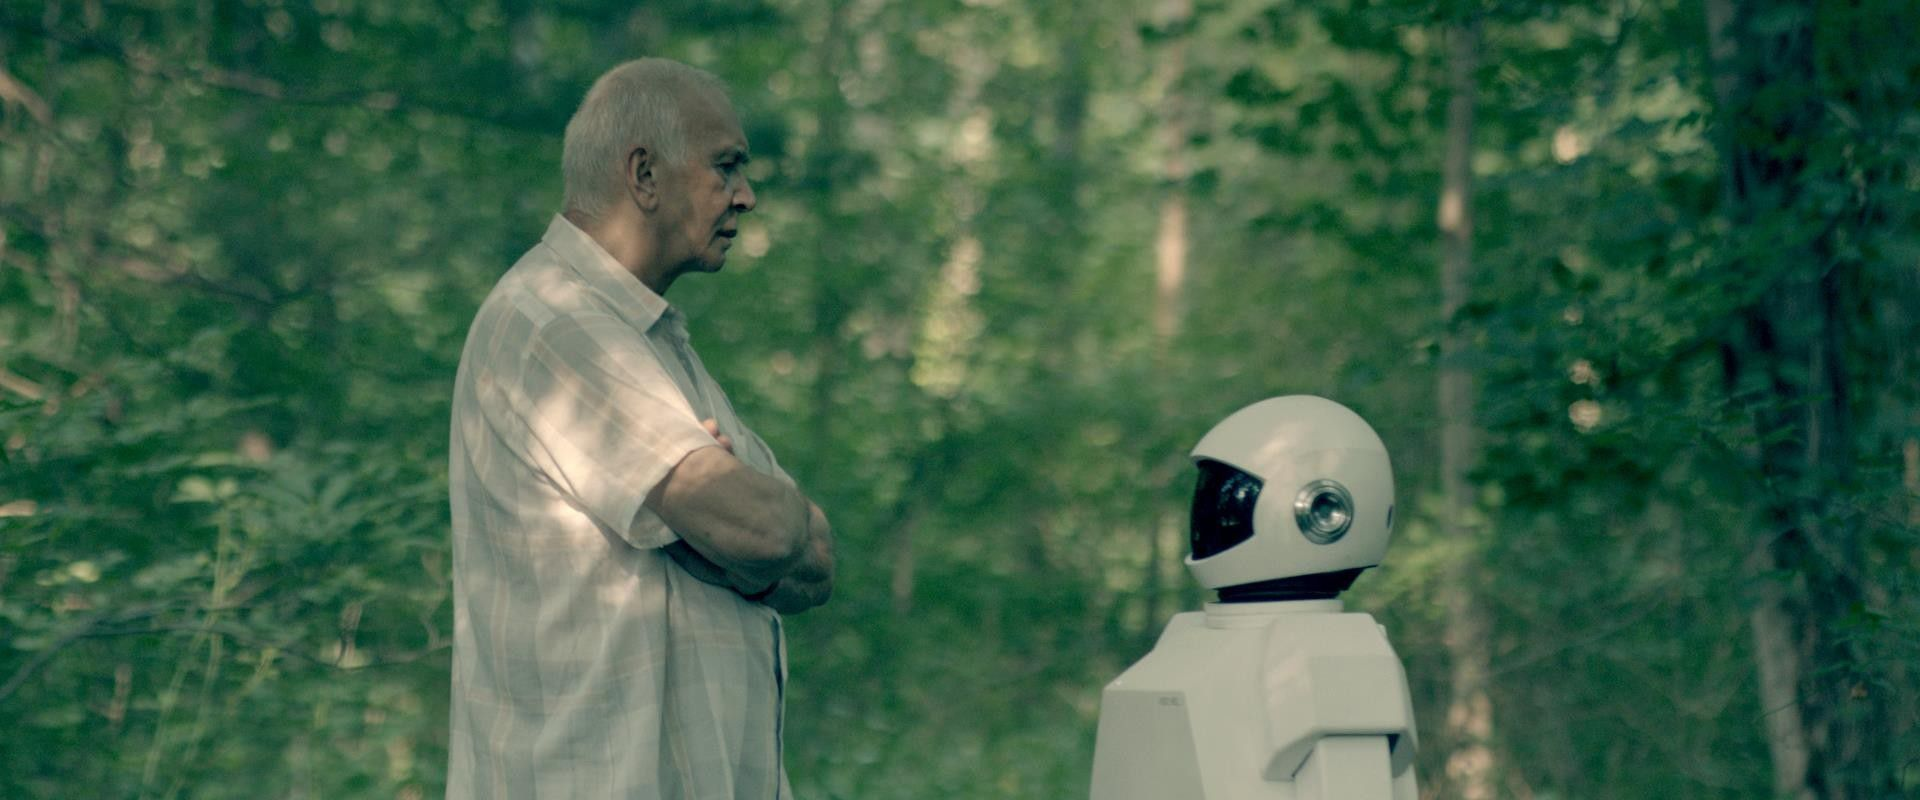 An image from Robot & Frank